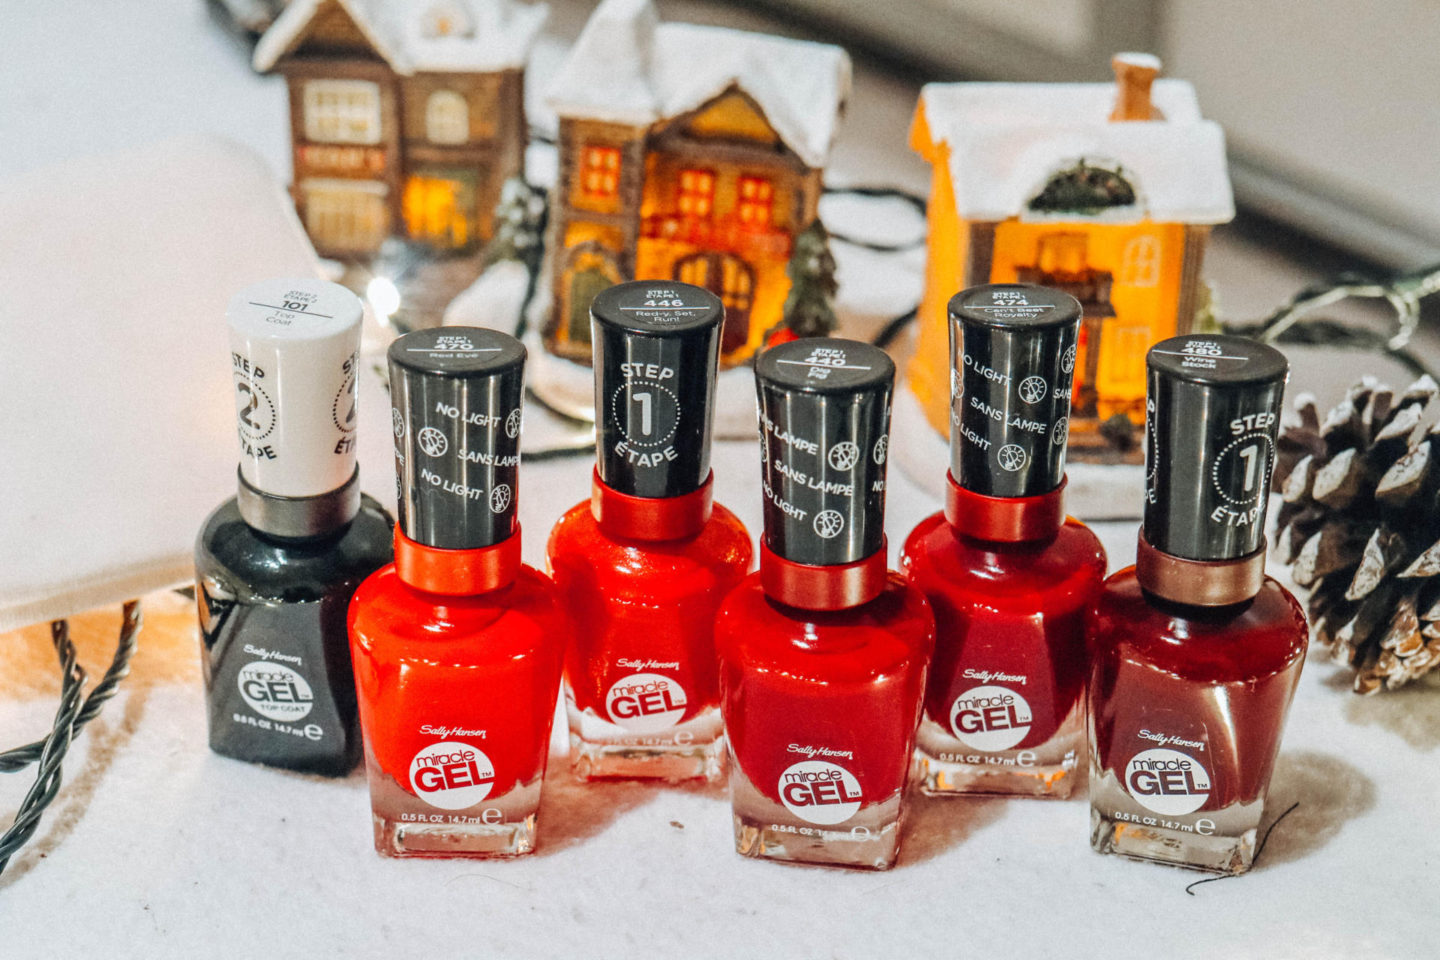 It's a holiday miracle with the five red nail polishes from Sally Hansen